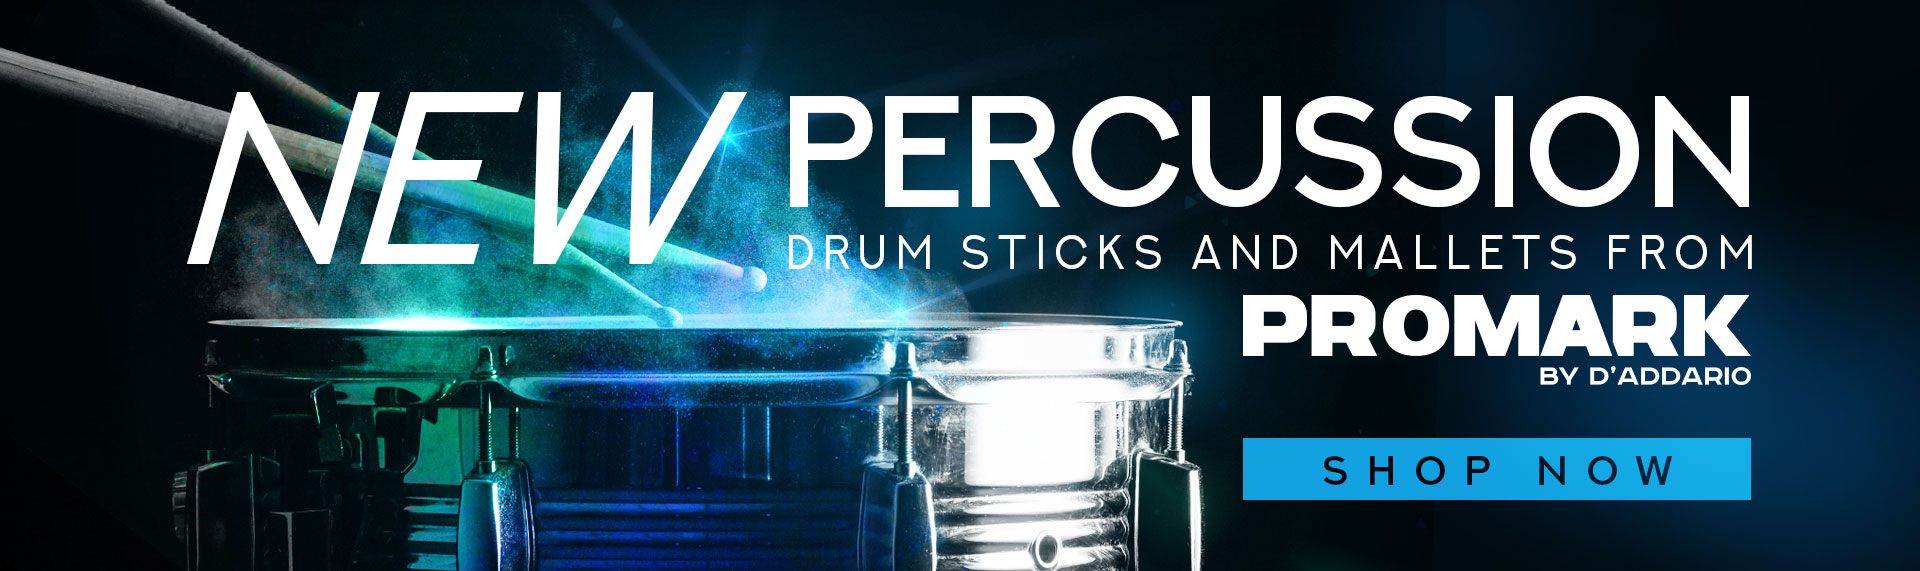 Band Shoppe is now a proud authorised dealer of Promark Drumsticks and Percussion Mallets!